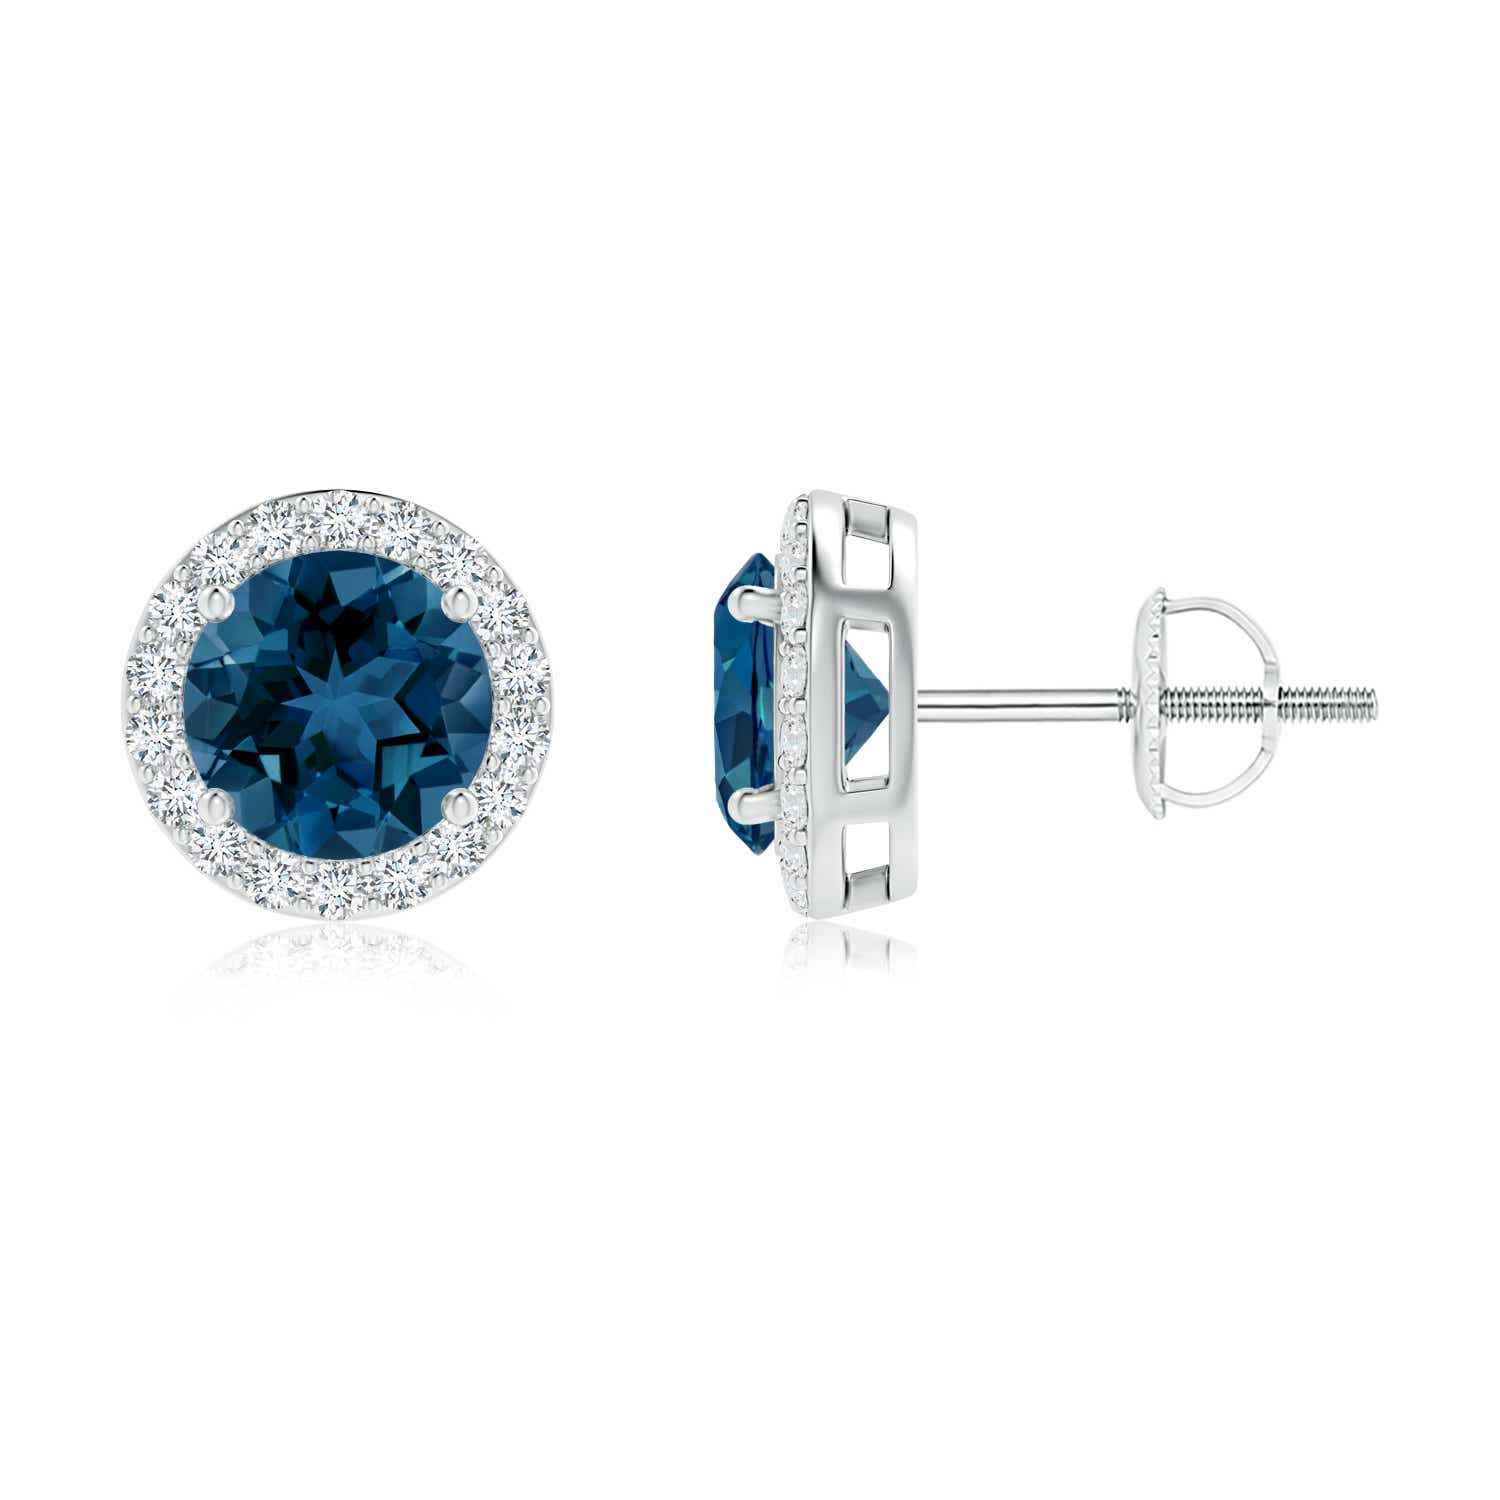 Angara Blue Sapphire Diamond Halo Vintage Studs in White Gold IIL8b2uZQJ